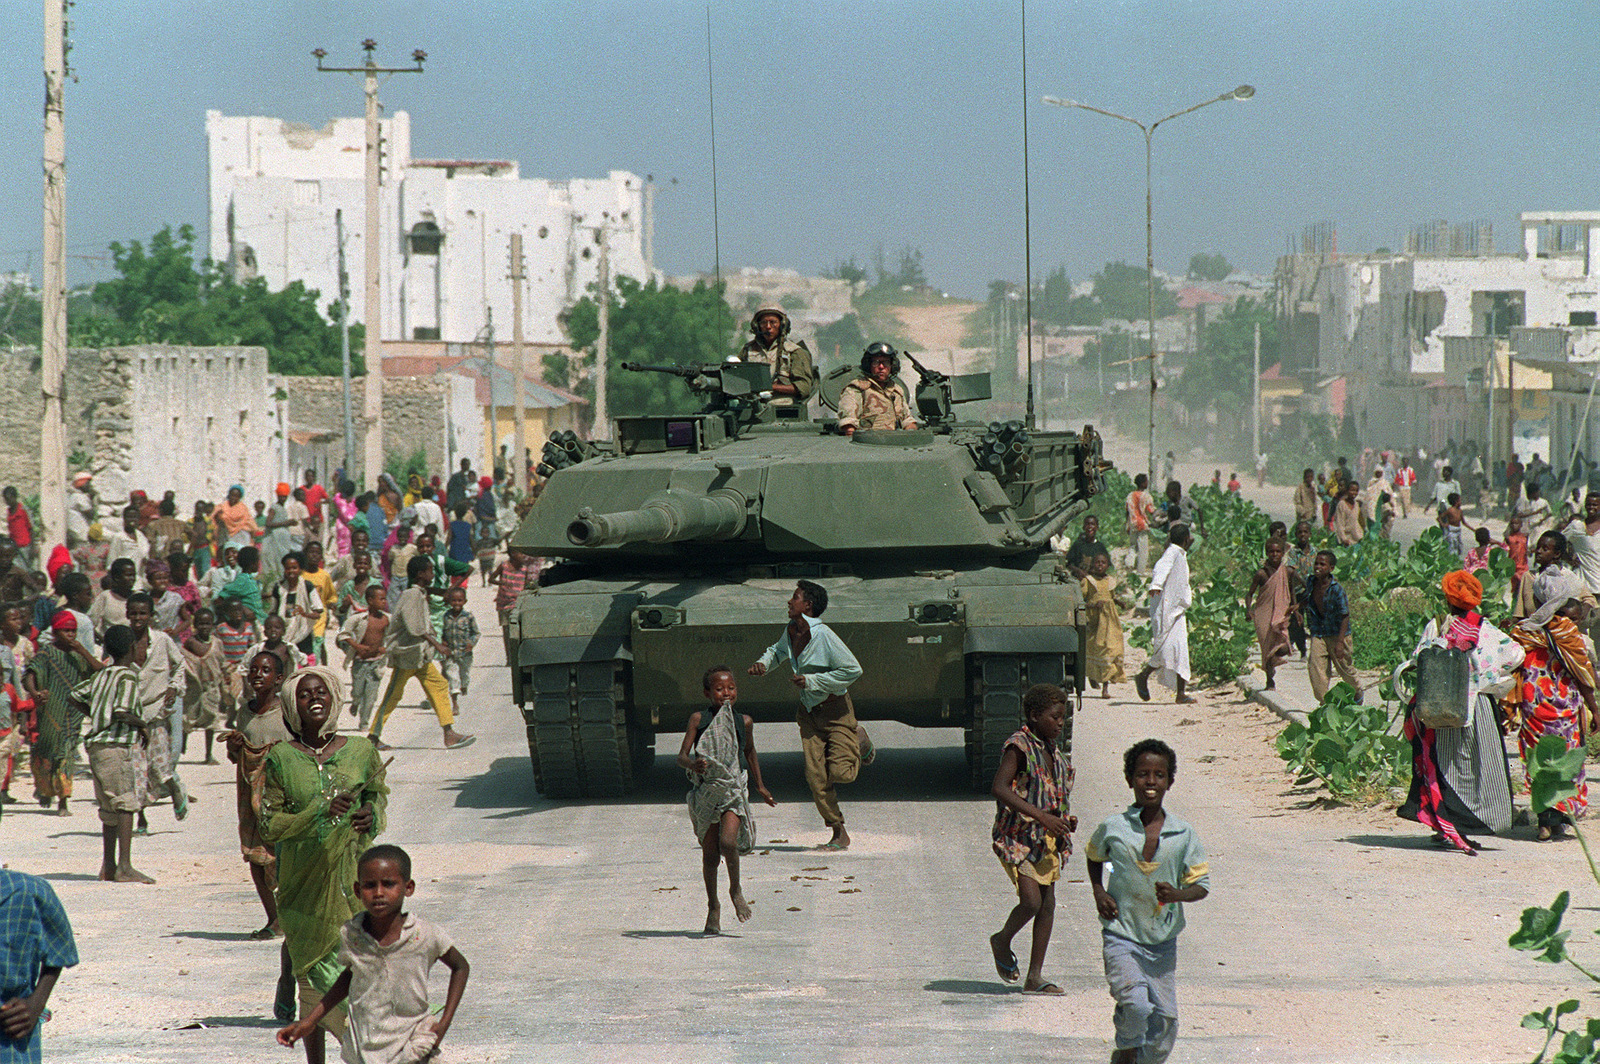 Somali children run alongside a U.S. Marine M-1 Abrams tank during an armored patrol in north Mogadishu, Somalia, Jan. 26, 1993. (AP/Mark Duncan)